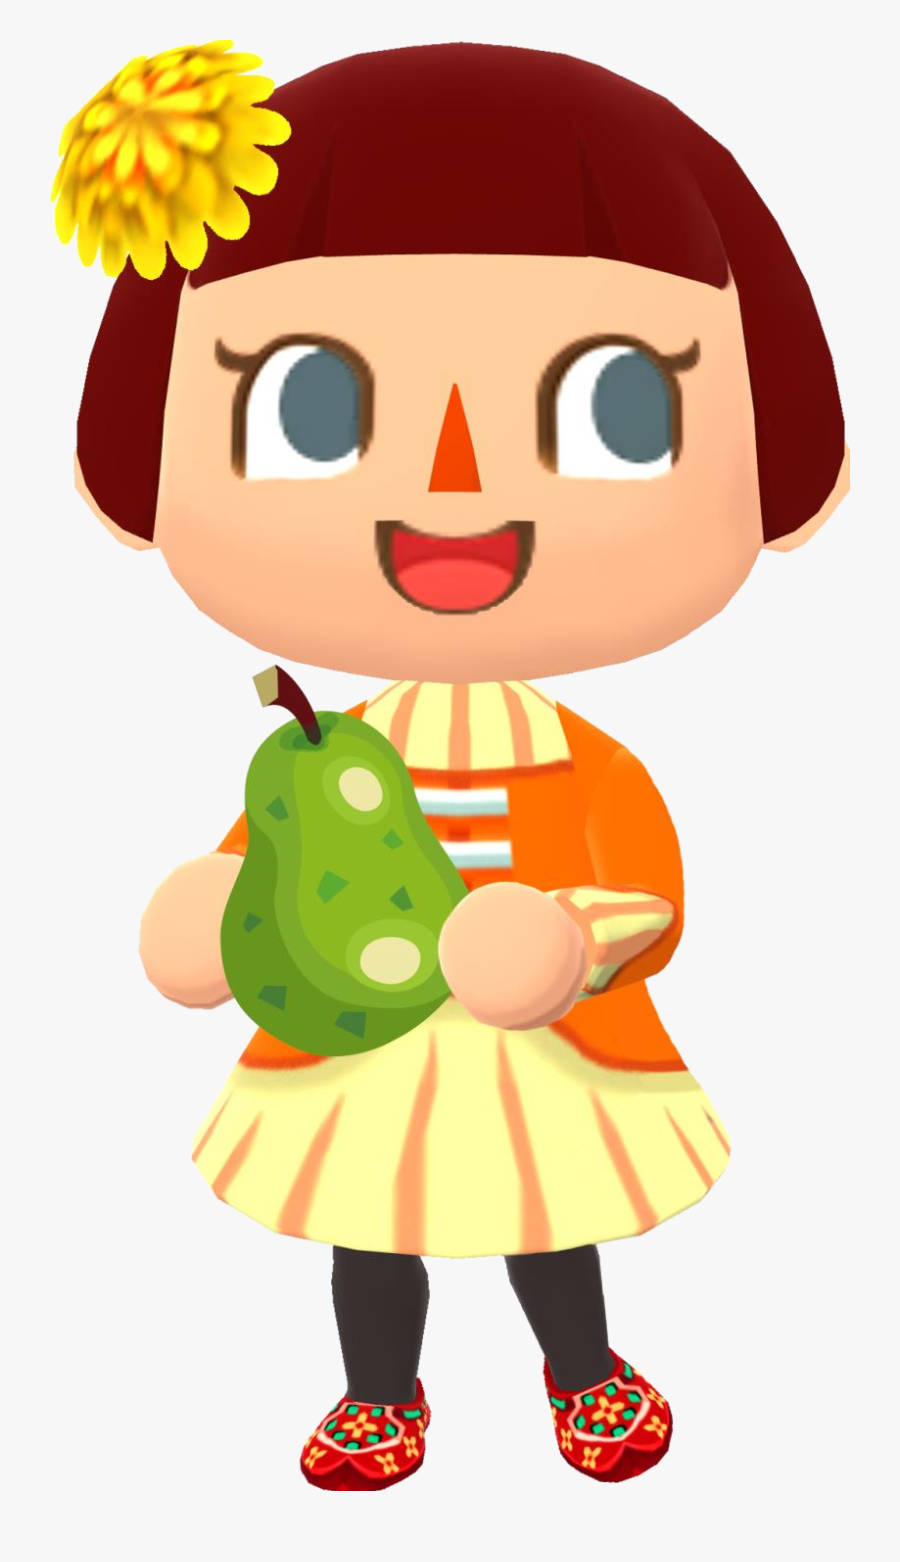 File Pcgirl Animal Crossing - Animal Crossing People Characters, Transparent Clipart